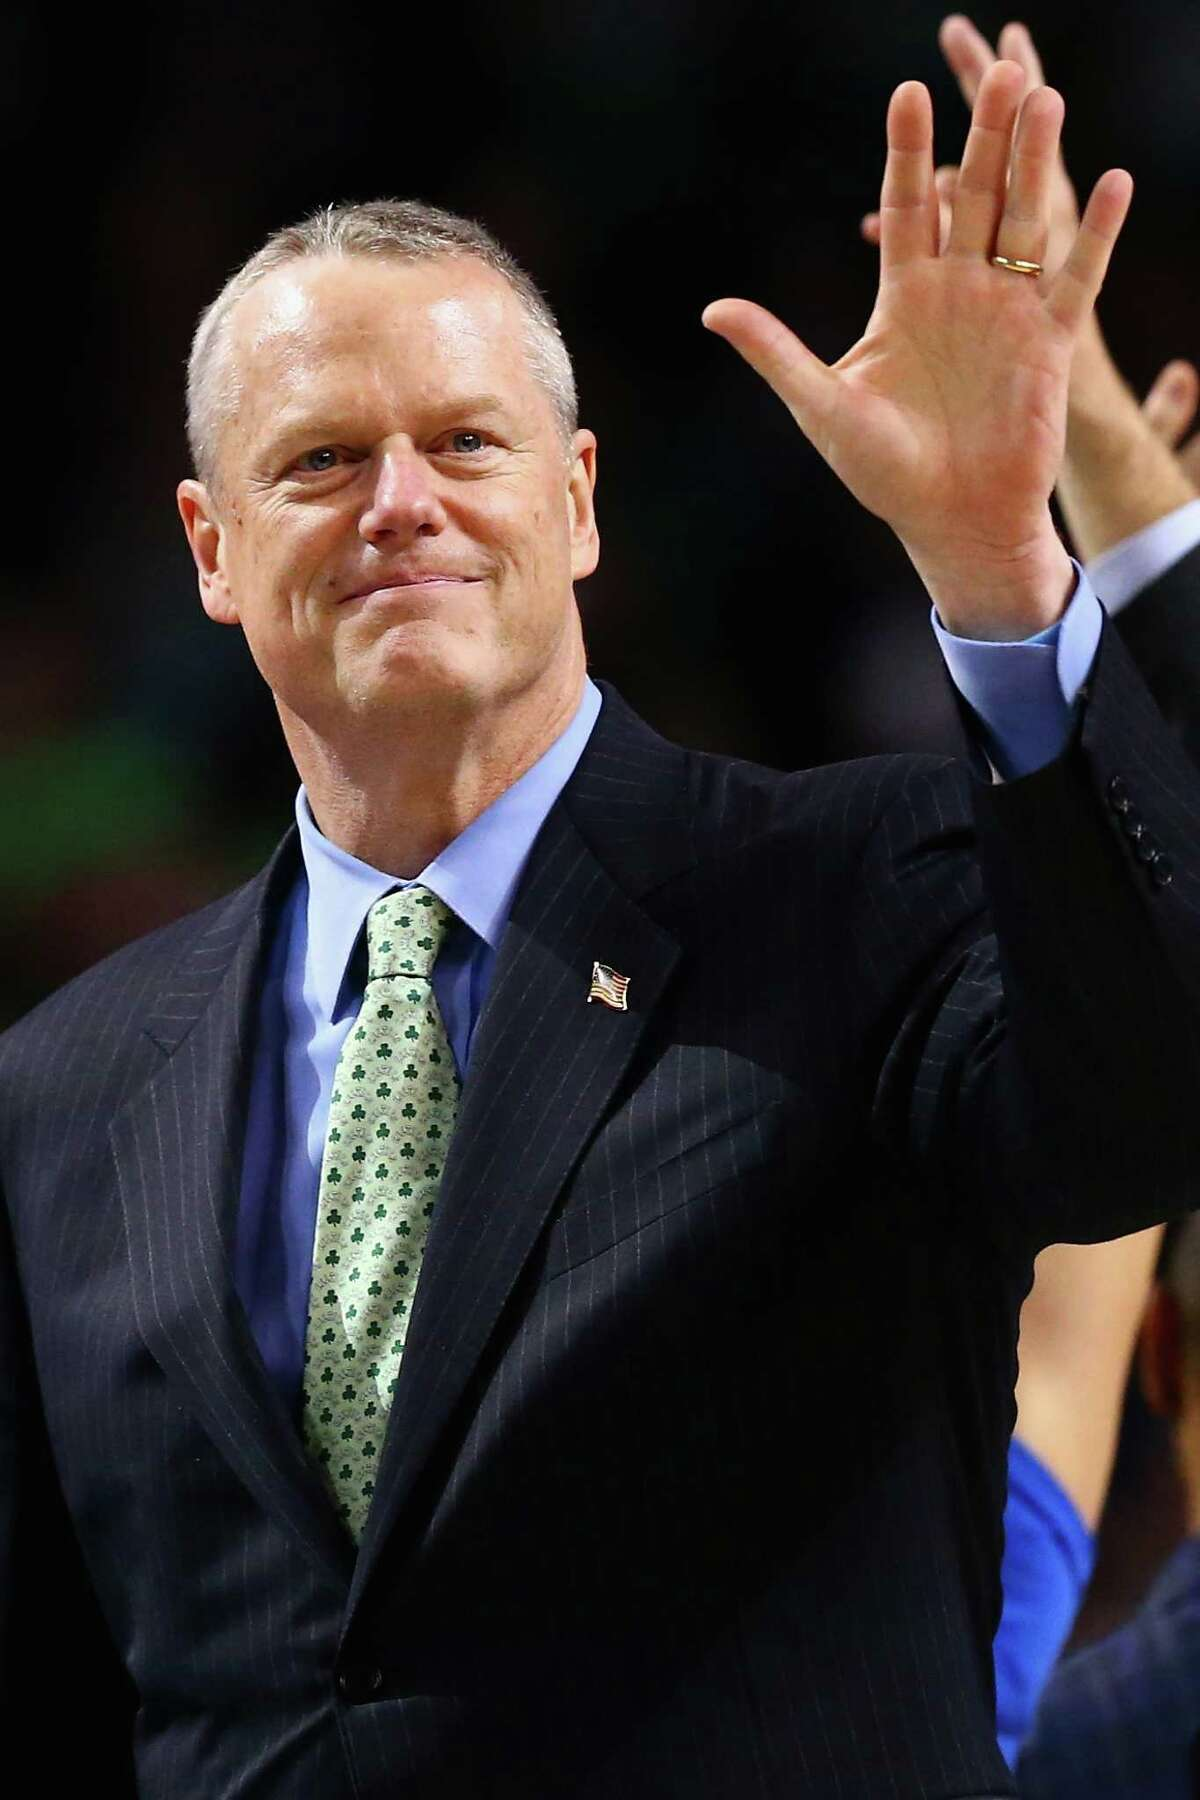 BOSTON, MASSACHUSETTS - APRIL 06: Massachusetts Governor Charlie Baker waves to the crowd during the second quarter of the game between the Boston Celtics and the New Orleans Pelicans at TD Garden on April 6, 2016 in Boston, Massachusetts. (Photo by Maddie Meyer/Getty Images) ORG XMIT: 575732235